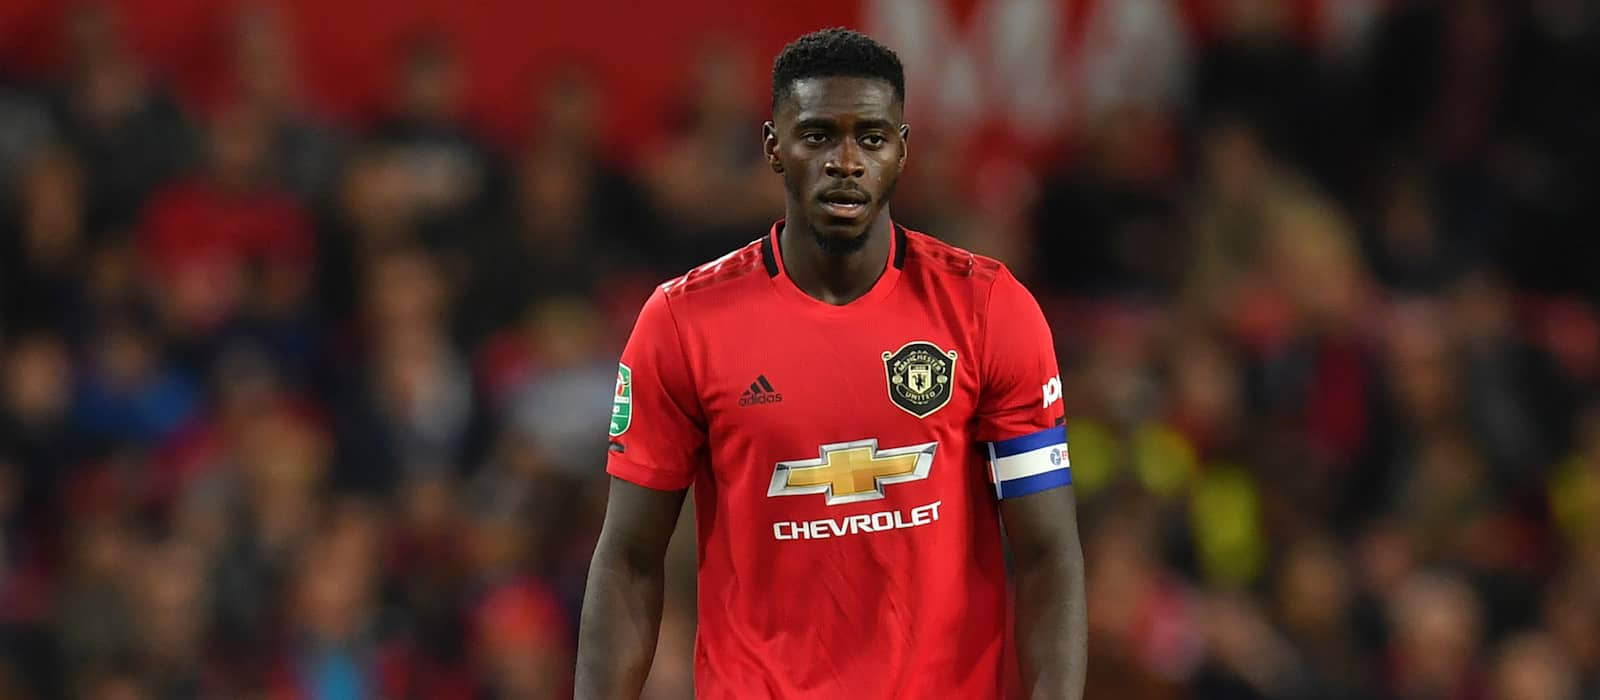 AZ Alkmaar vs. Manchester United: Potential XI with Axel Tuanzebe and Fred